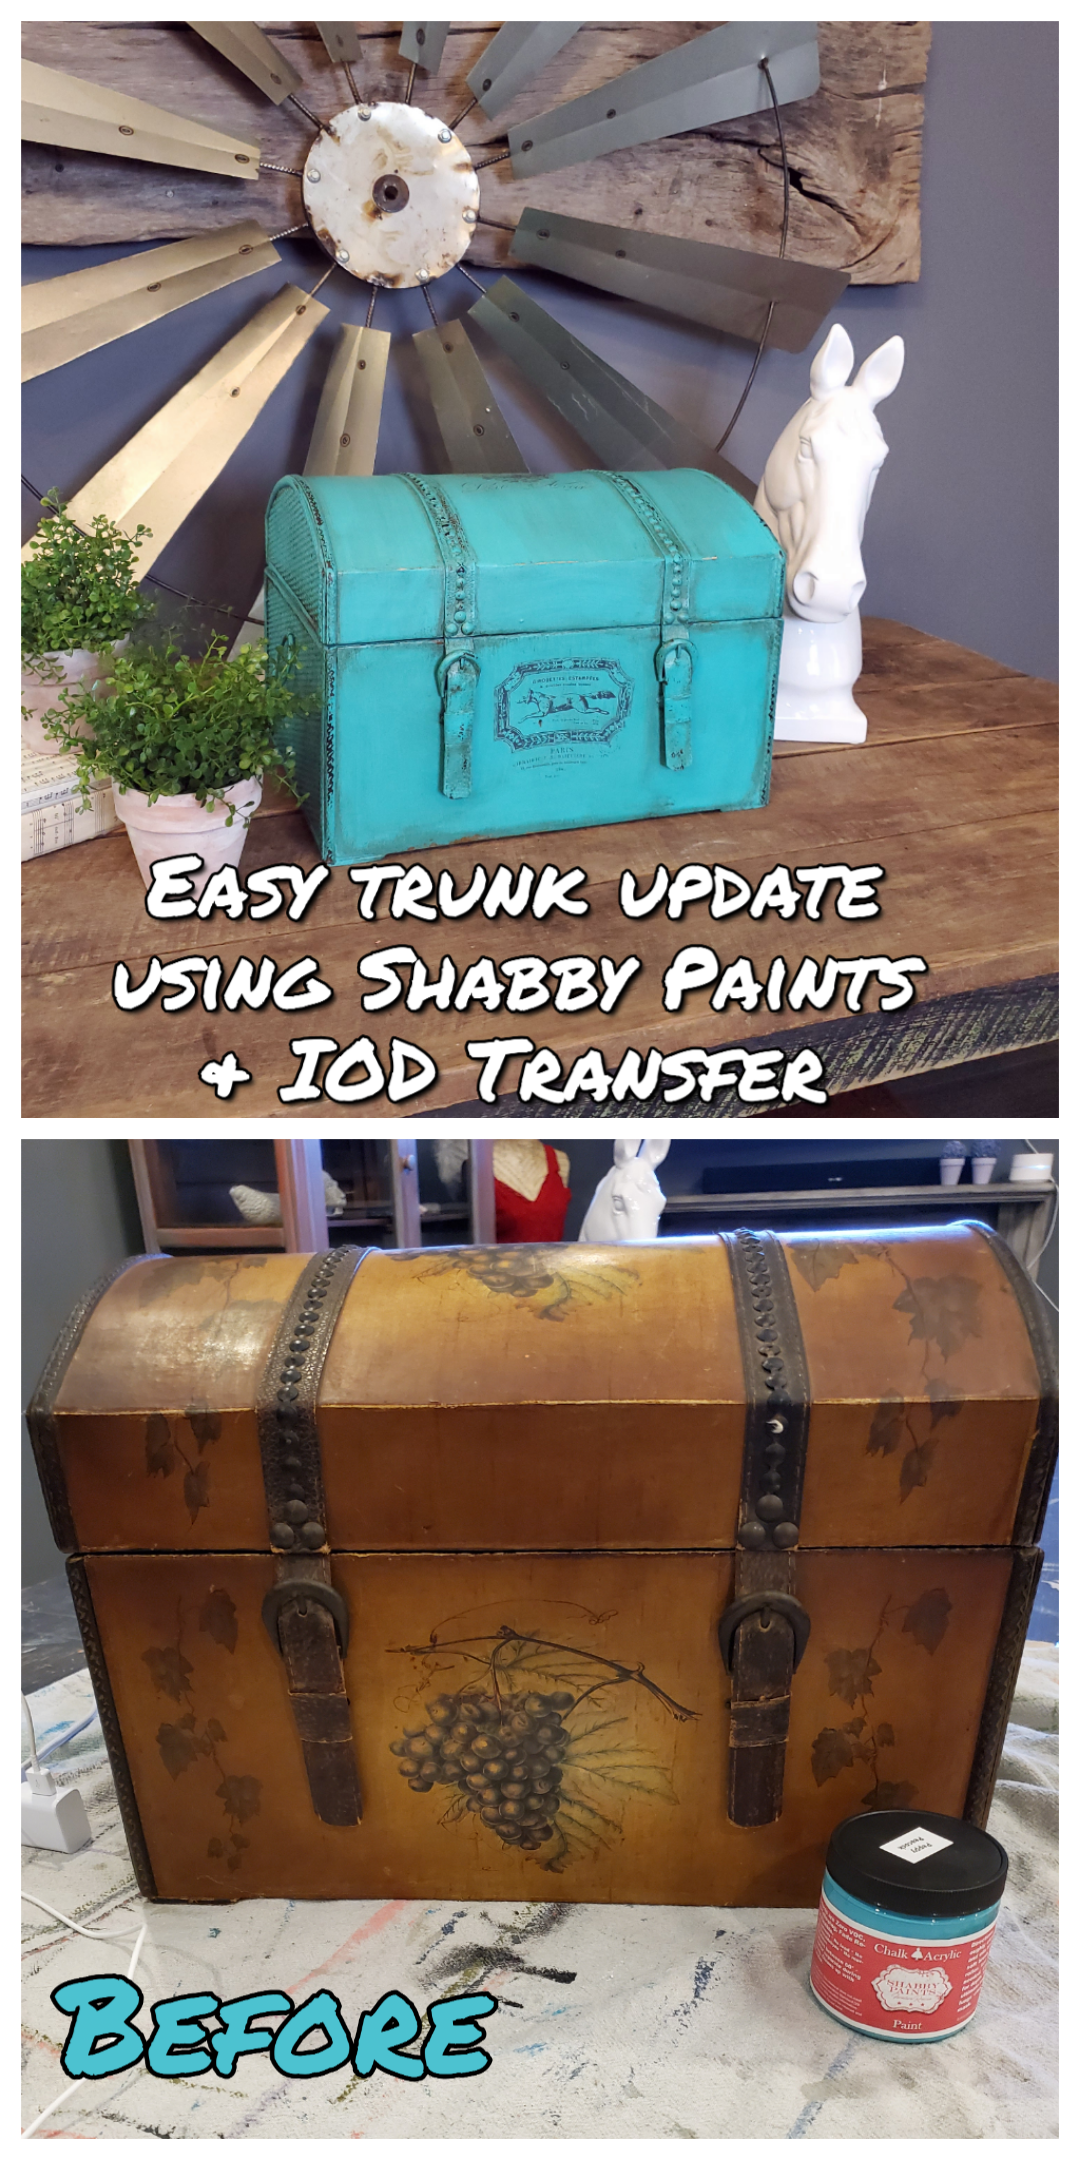 Easy trunk update